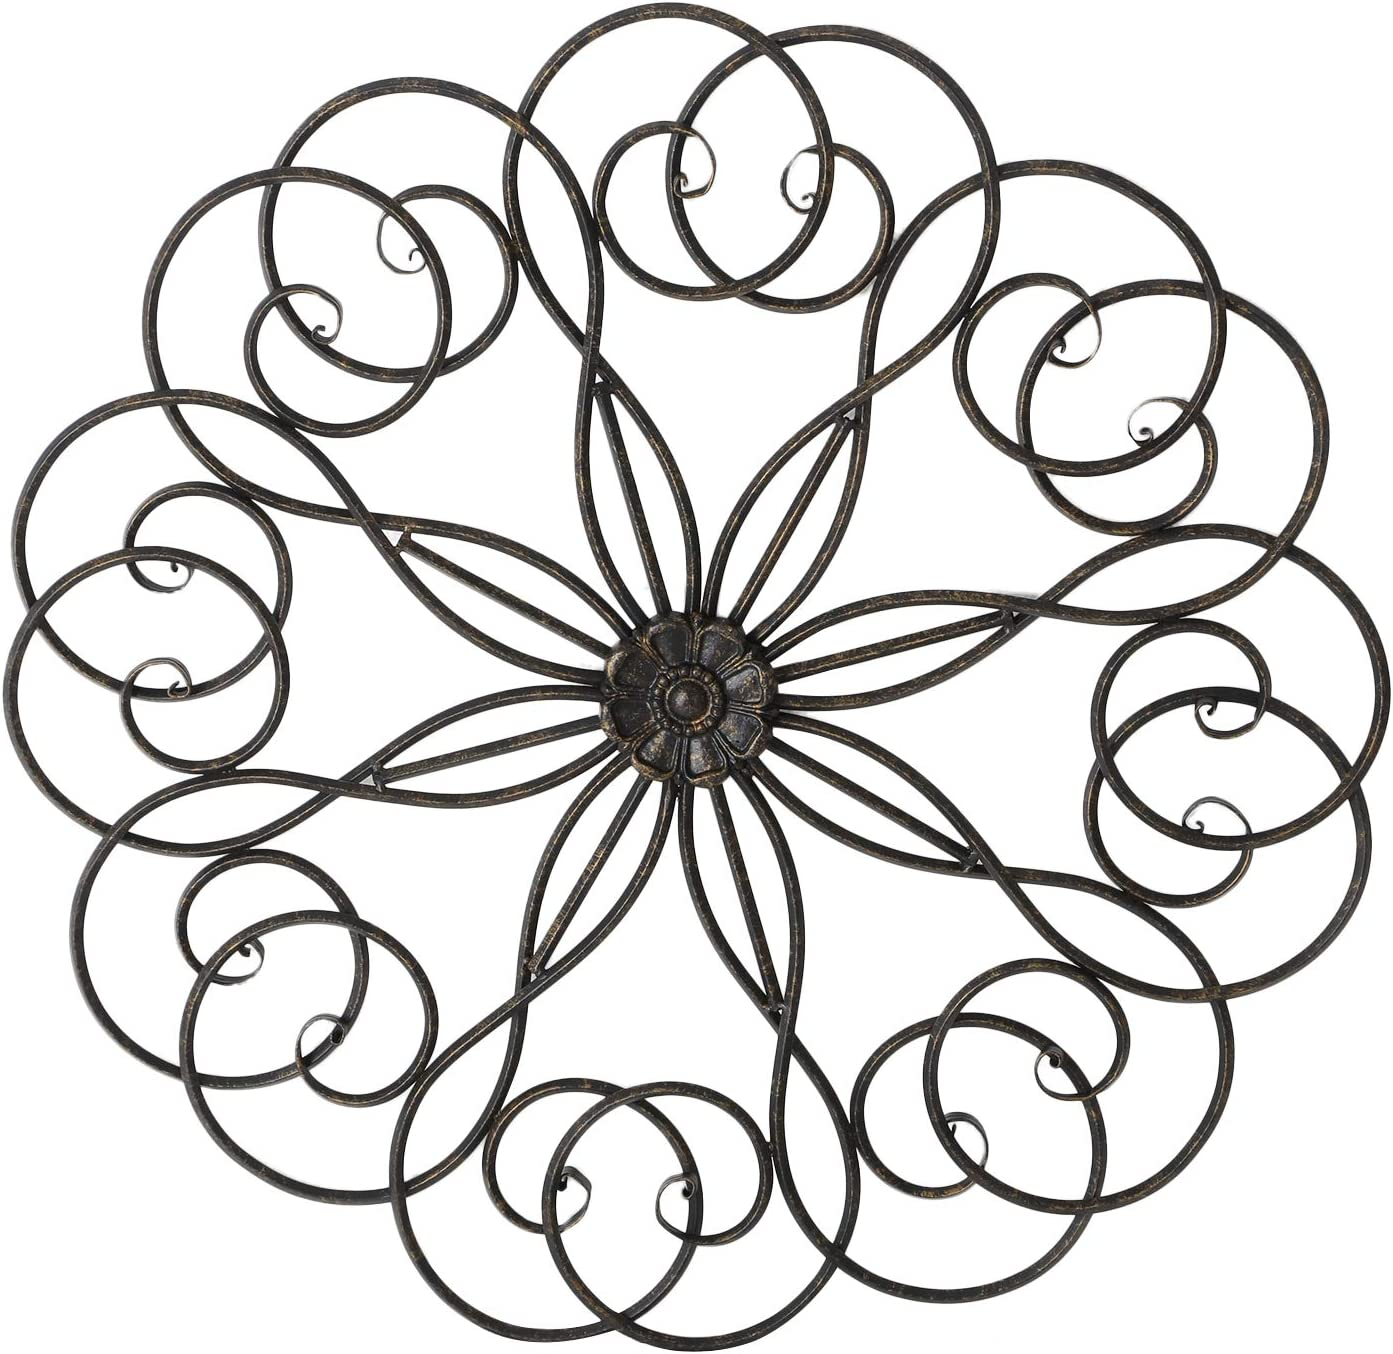 Homebeez Round Metal Wall Decor Copper Flower Home Art Decoration for Living Room/Kitchen - 28.3x28.3 Inches